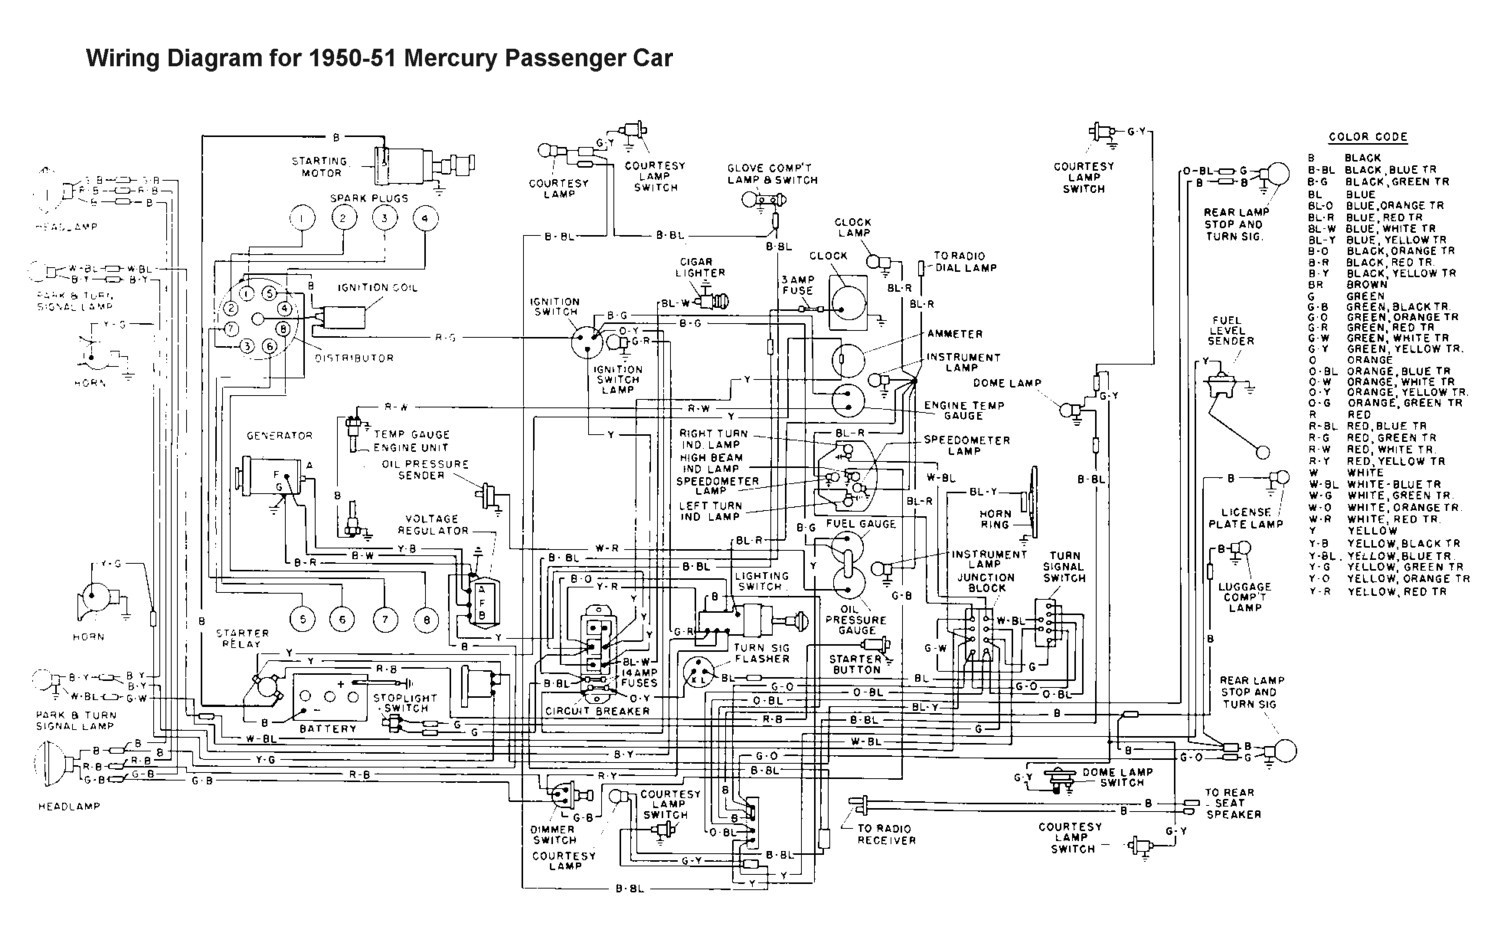 Flathead_Electrical_wiring1950 51merc flathead electrical wiring diagrams electrical wiring schematic at fashall.co